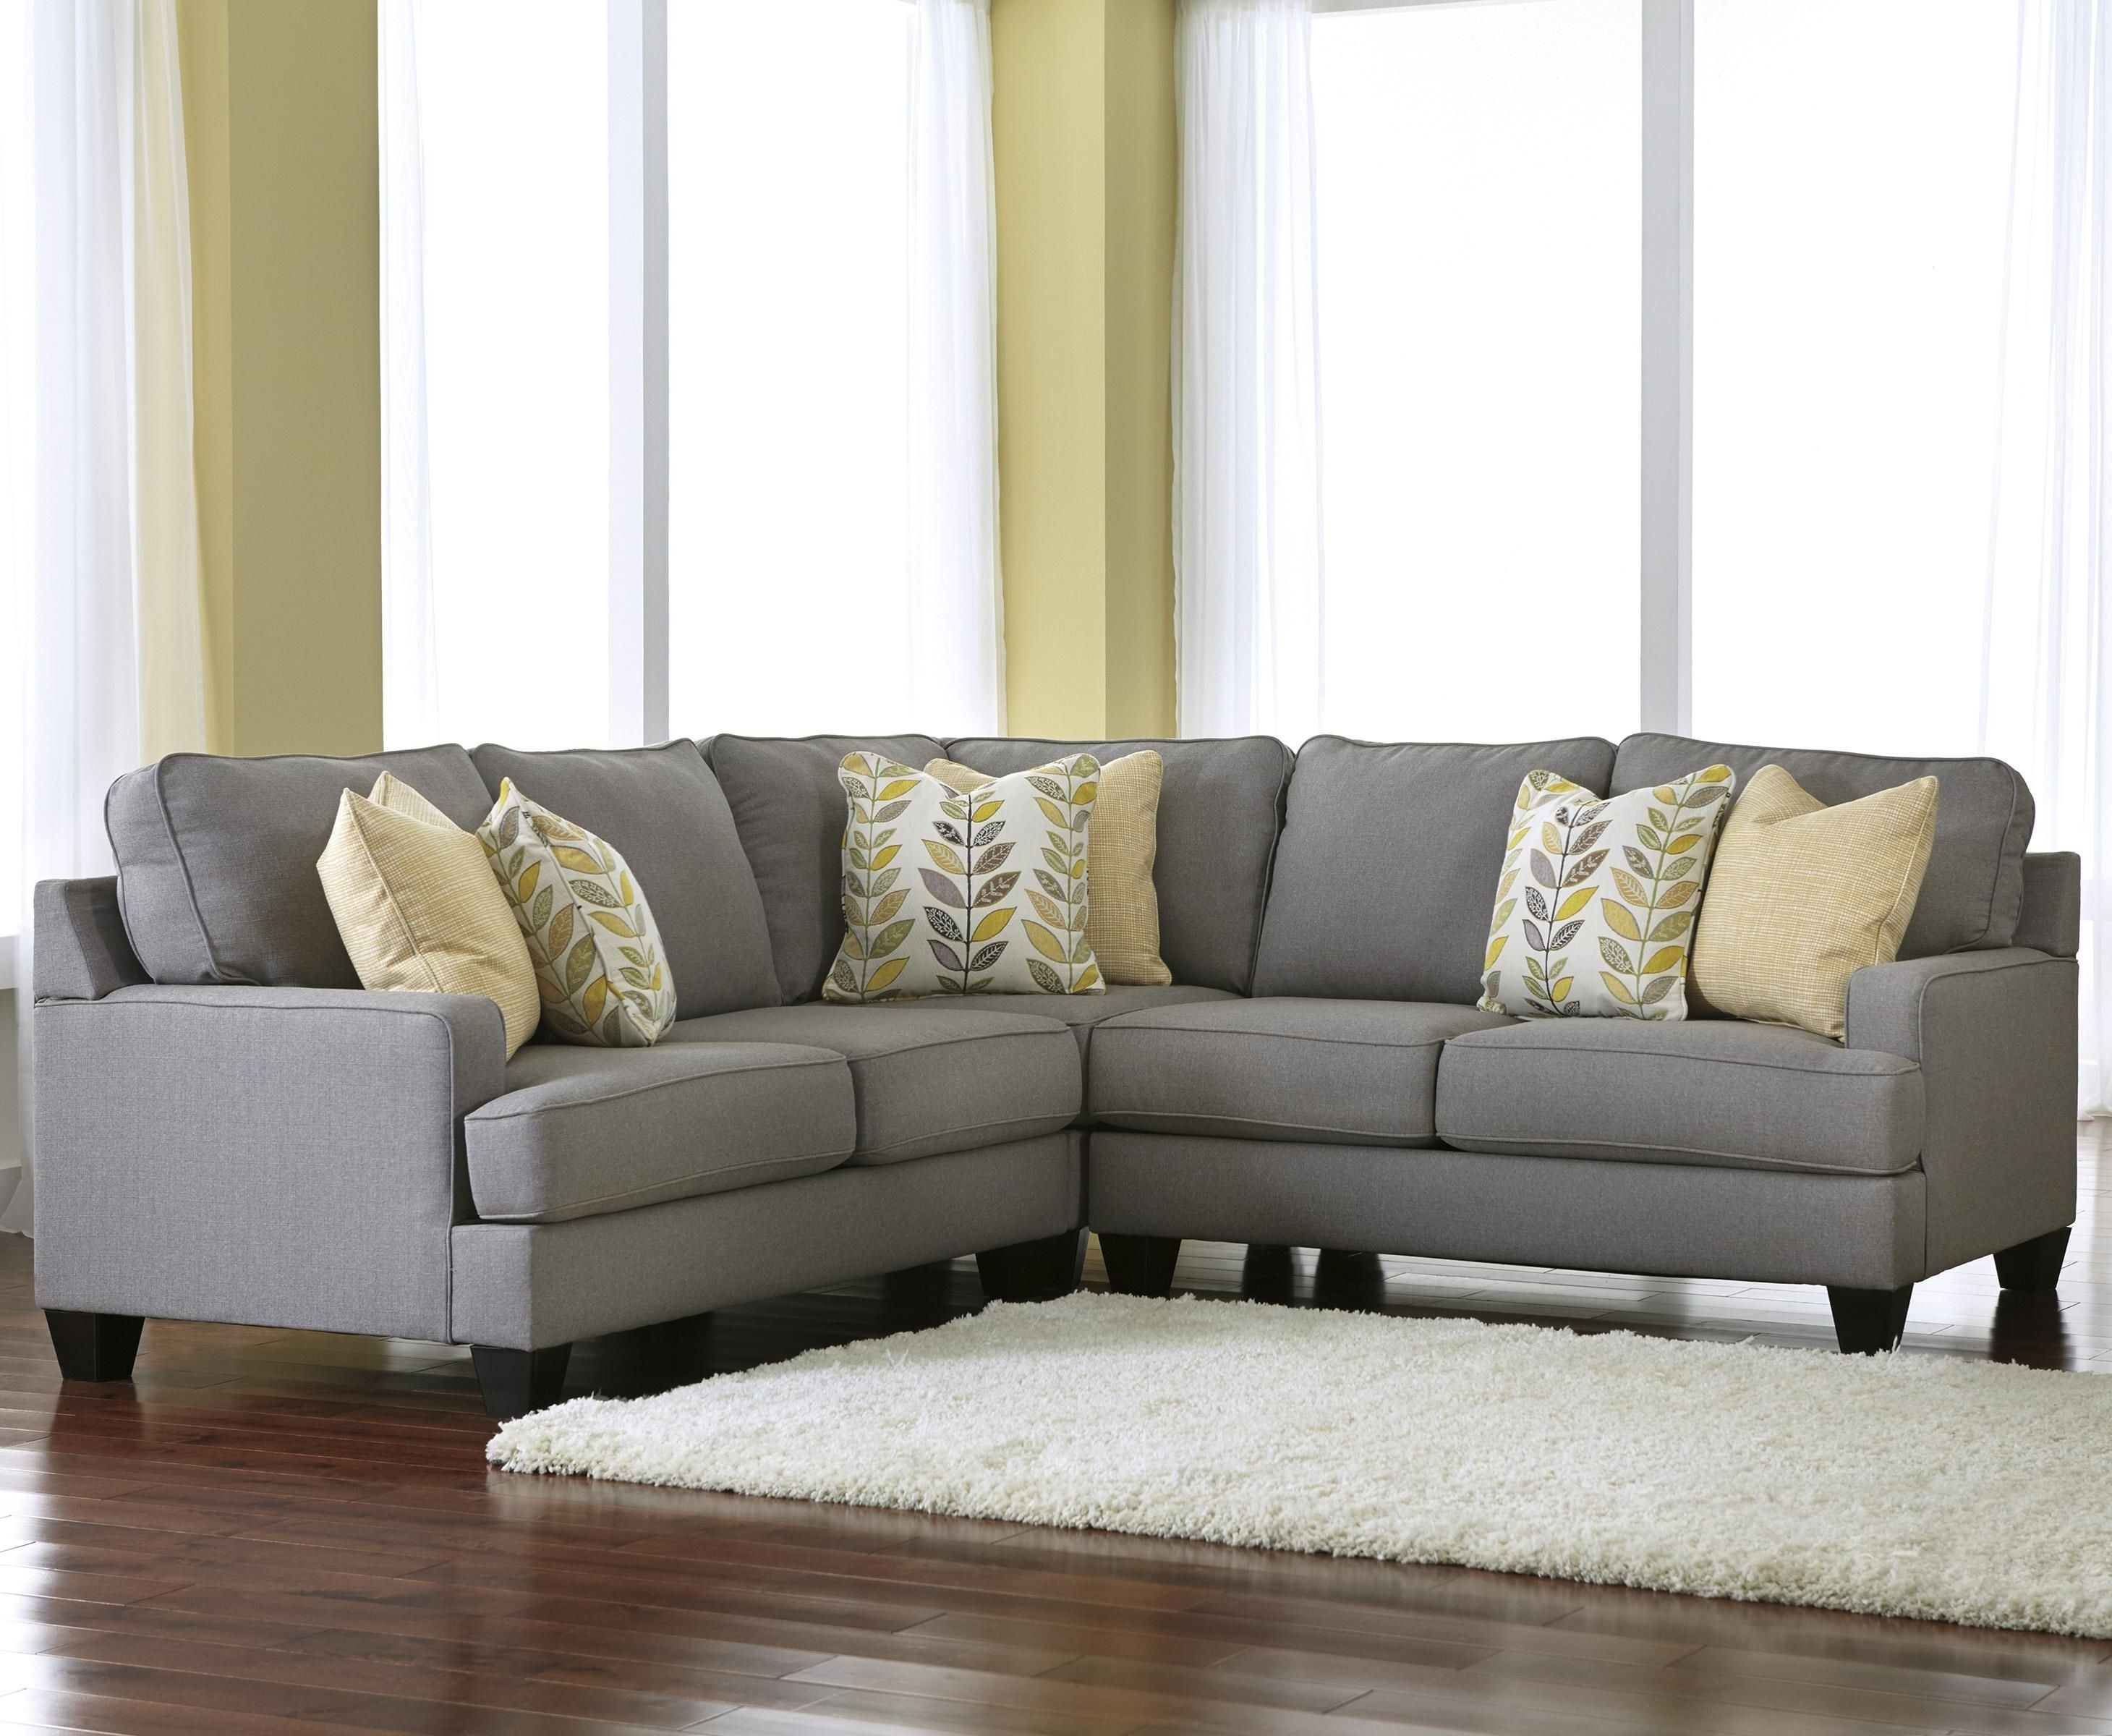 2019 Chamberly – Alloy Modern 3 Piece Corner Sectional Sofa With Pertaining To Nova Scotia Sectional Sofas (View 2 of 20)